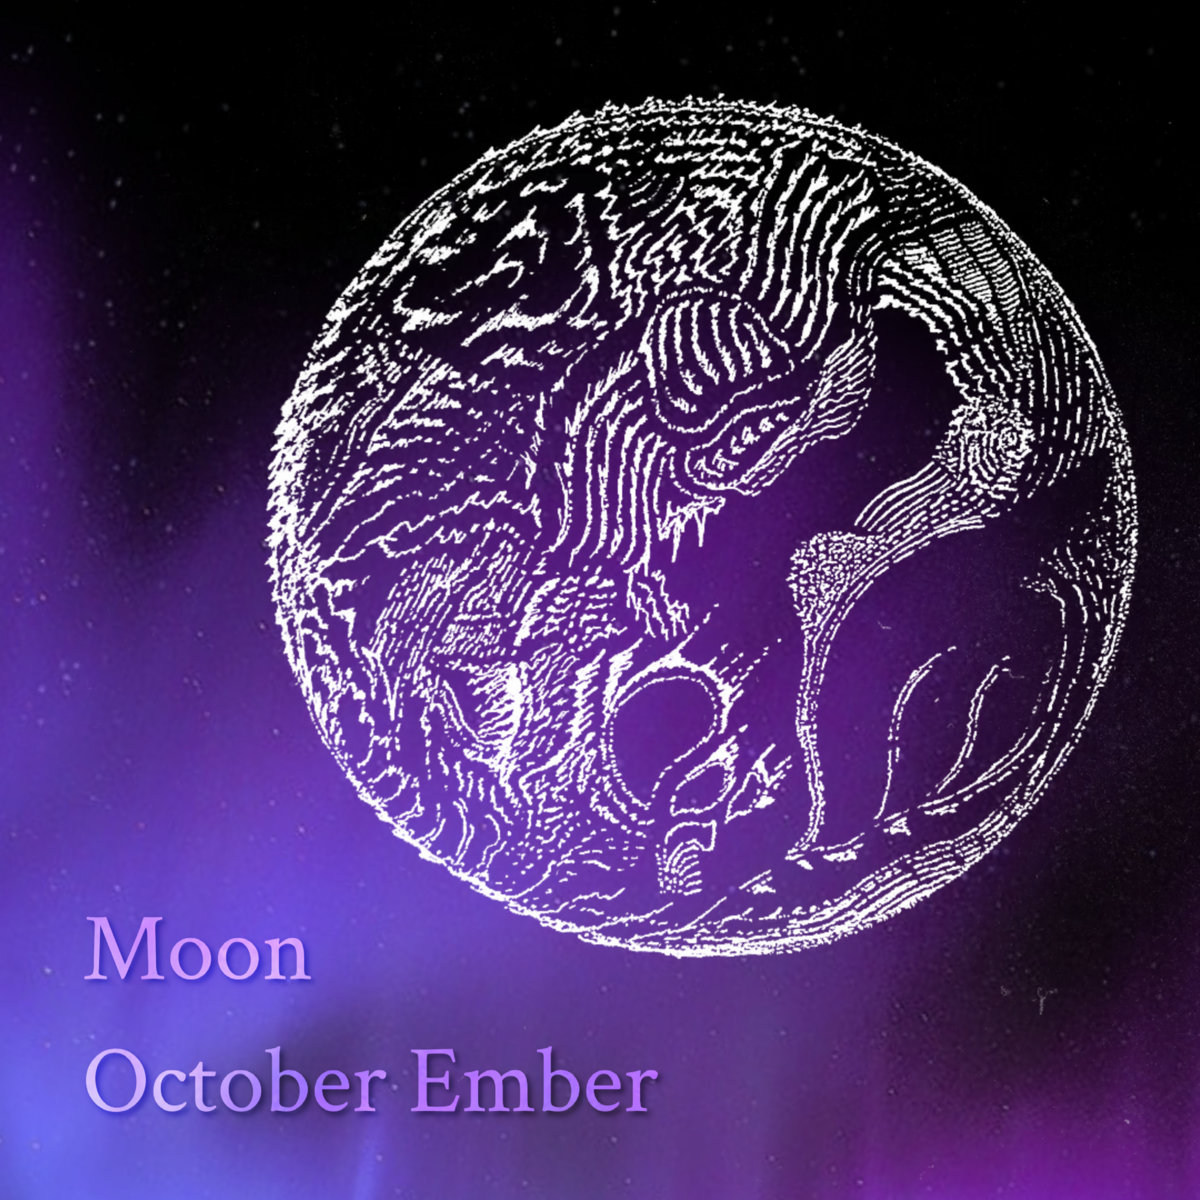 Moon by October Ember